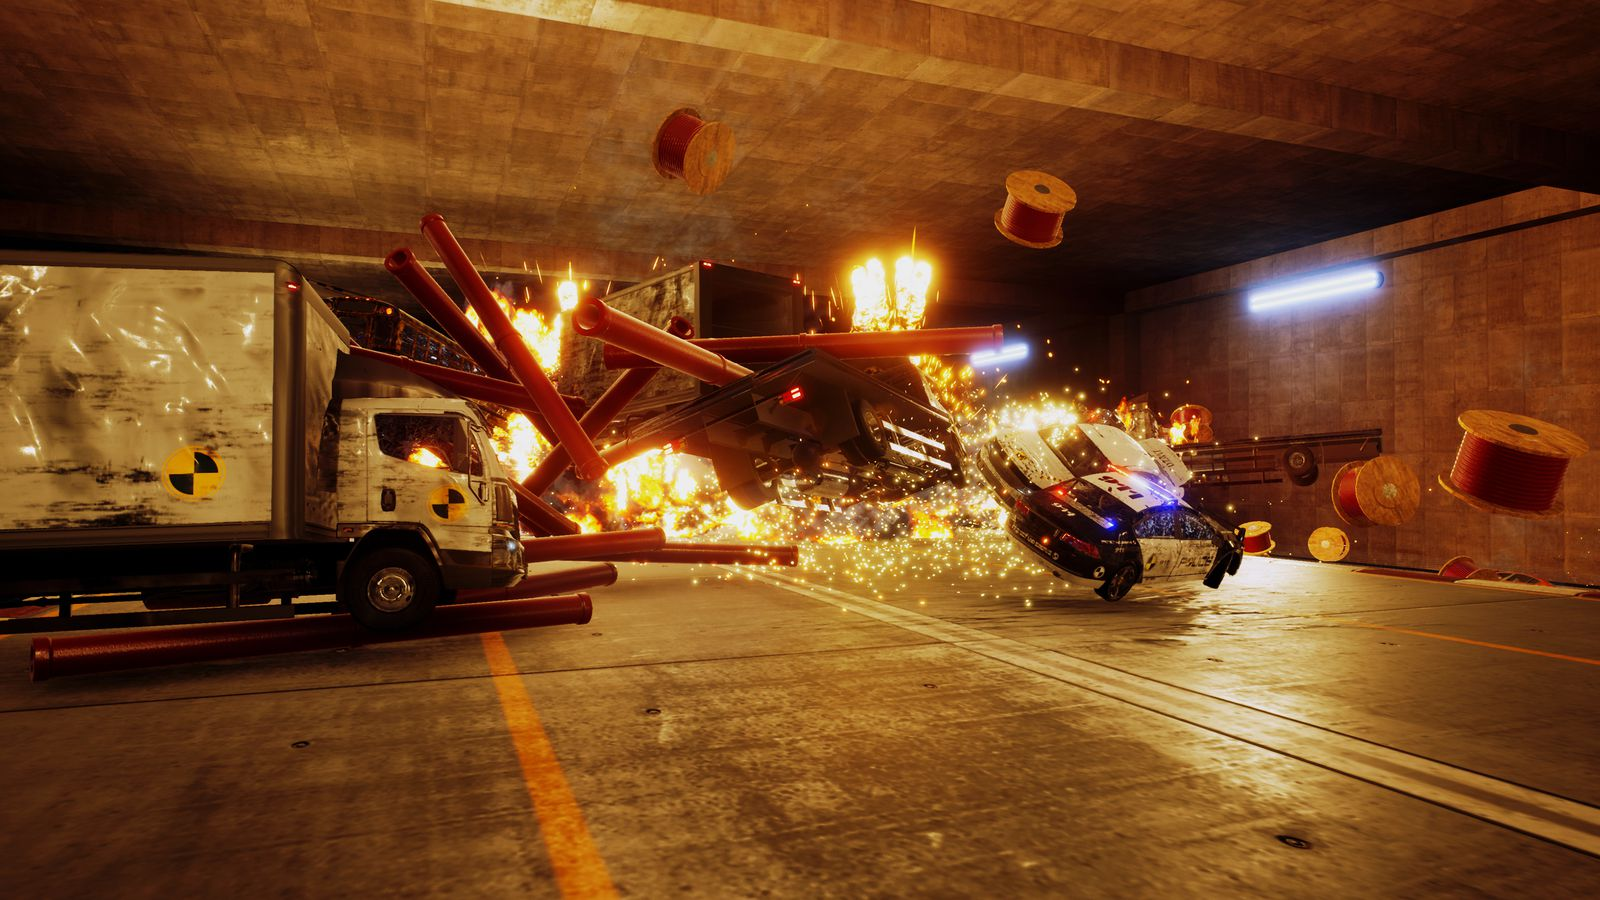 Burnout creators spin off Crash Mode into its own game, Danger Zone